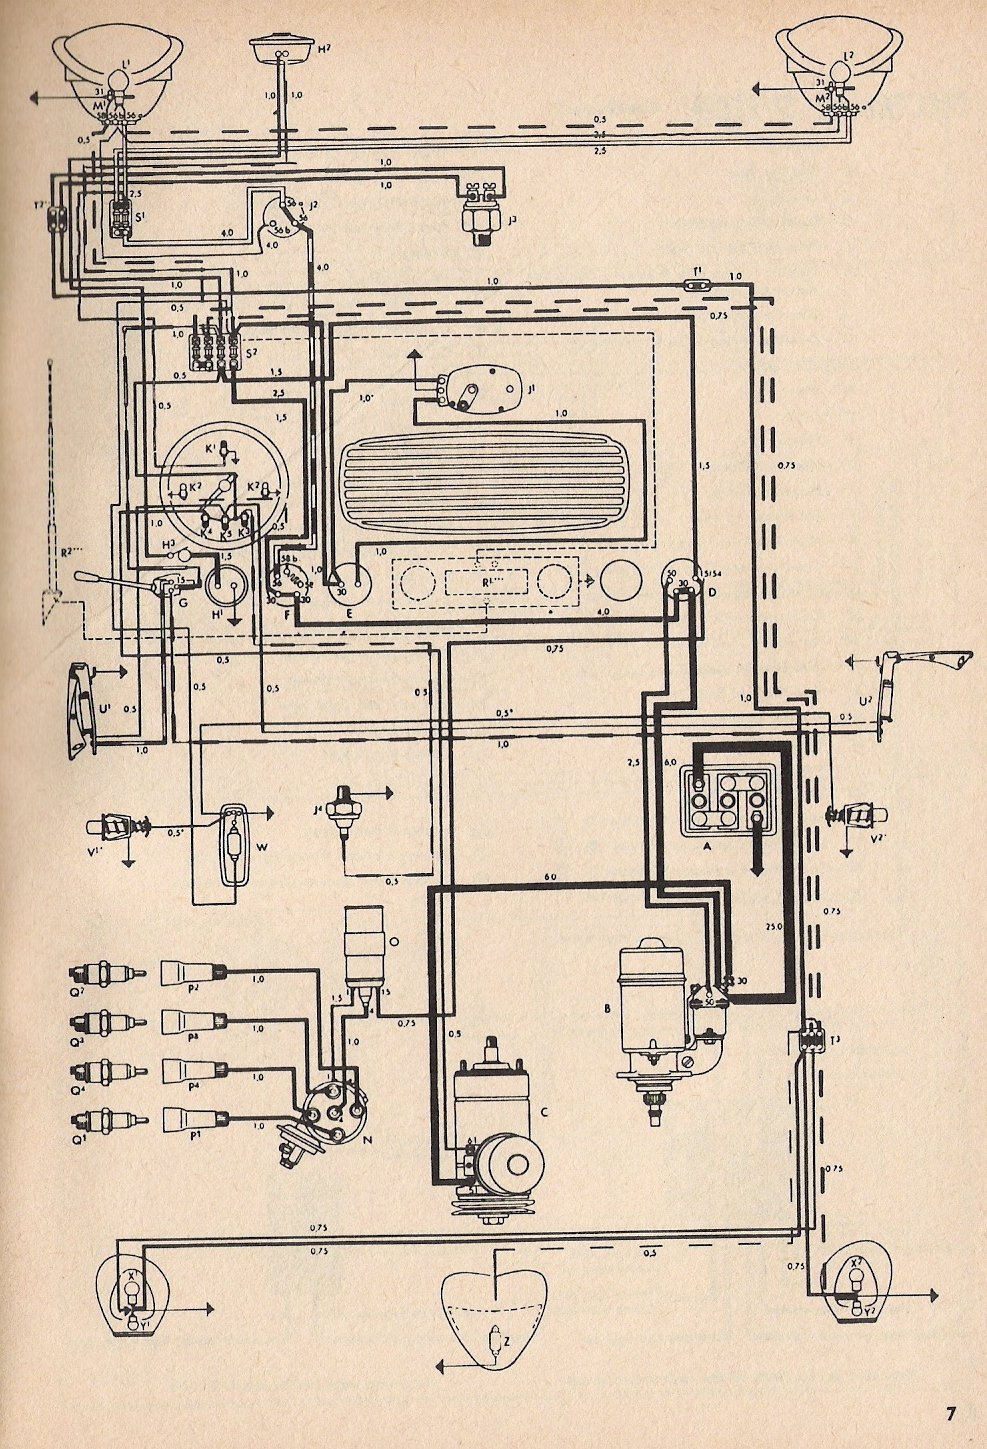 71 Beetle Wiring Diagram Free For You Bug Altinator With Thesamba Com Type 1 Diagrams Rh Alternator Super